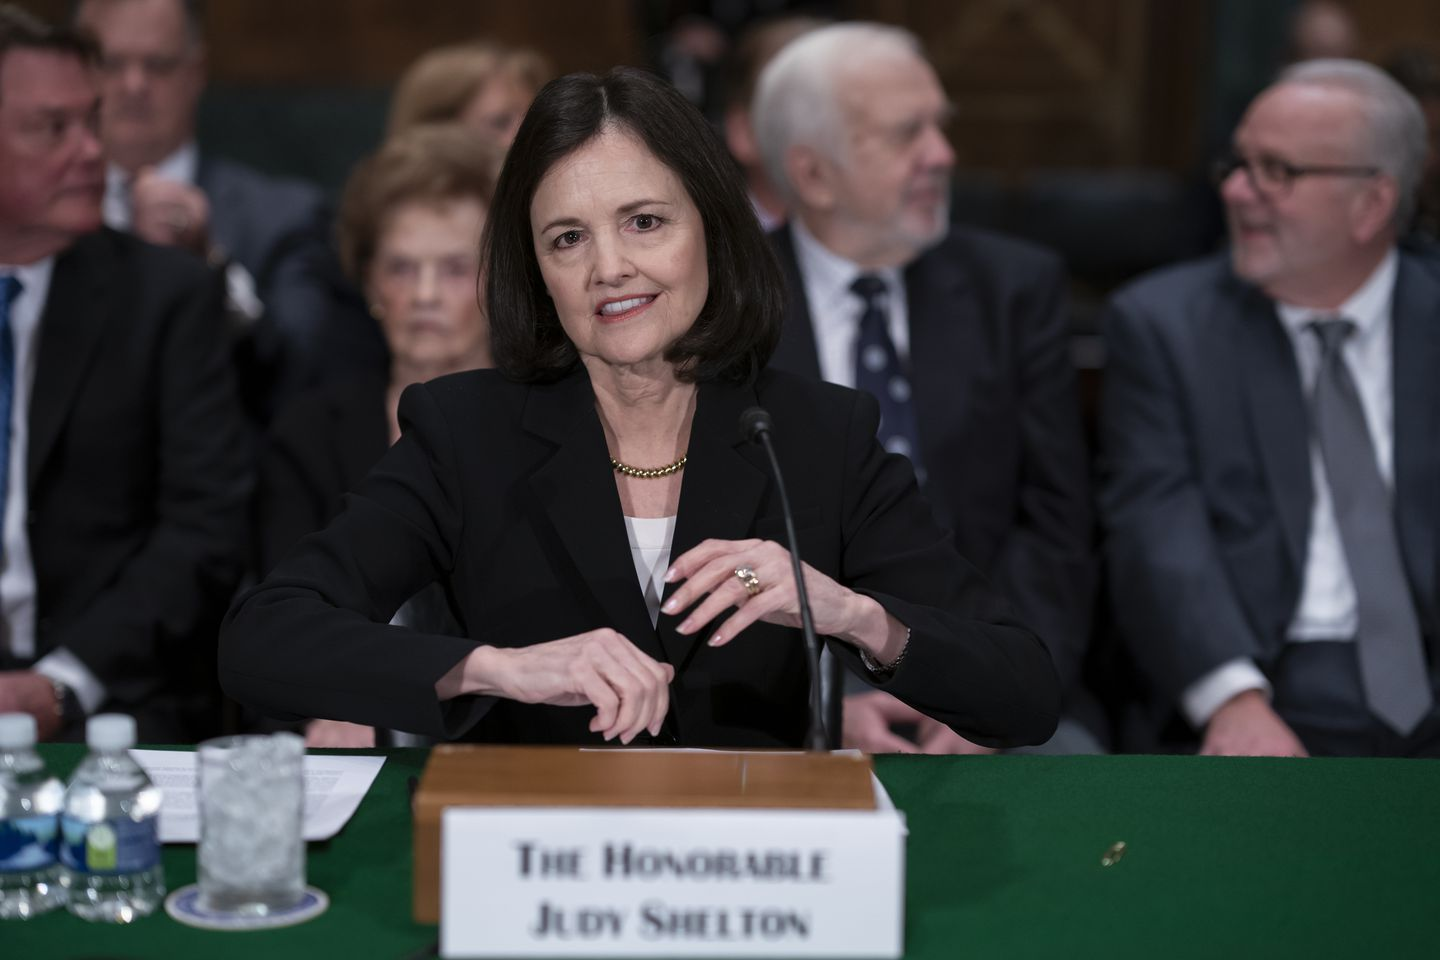 """Judy Shelton, one of President Trump's nominees for the Federal Reserve, said she would bring """"intellectual diversity"""" to the Fed."""